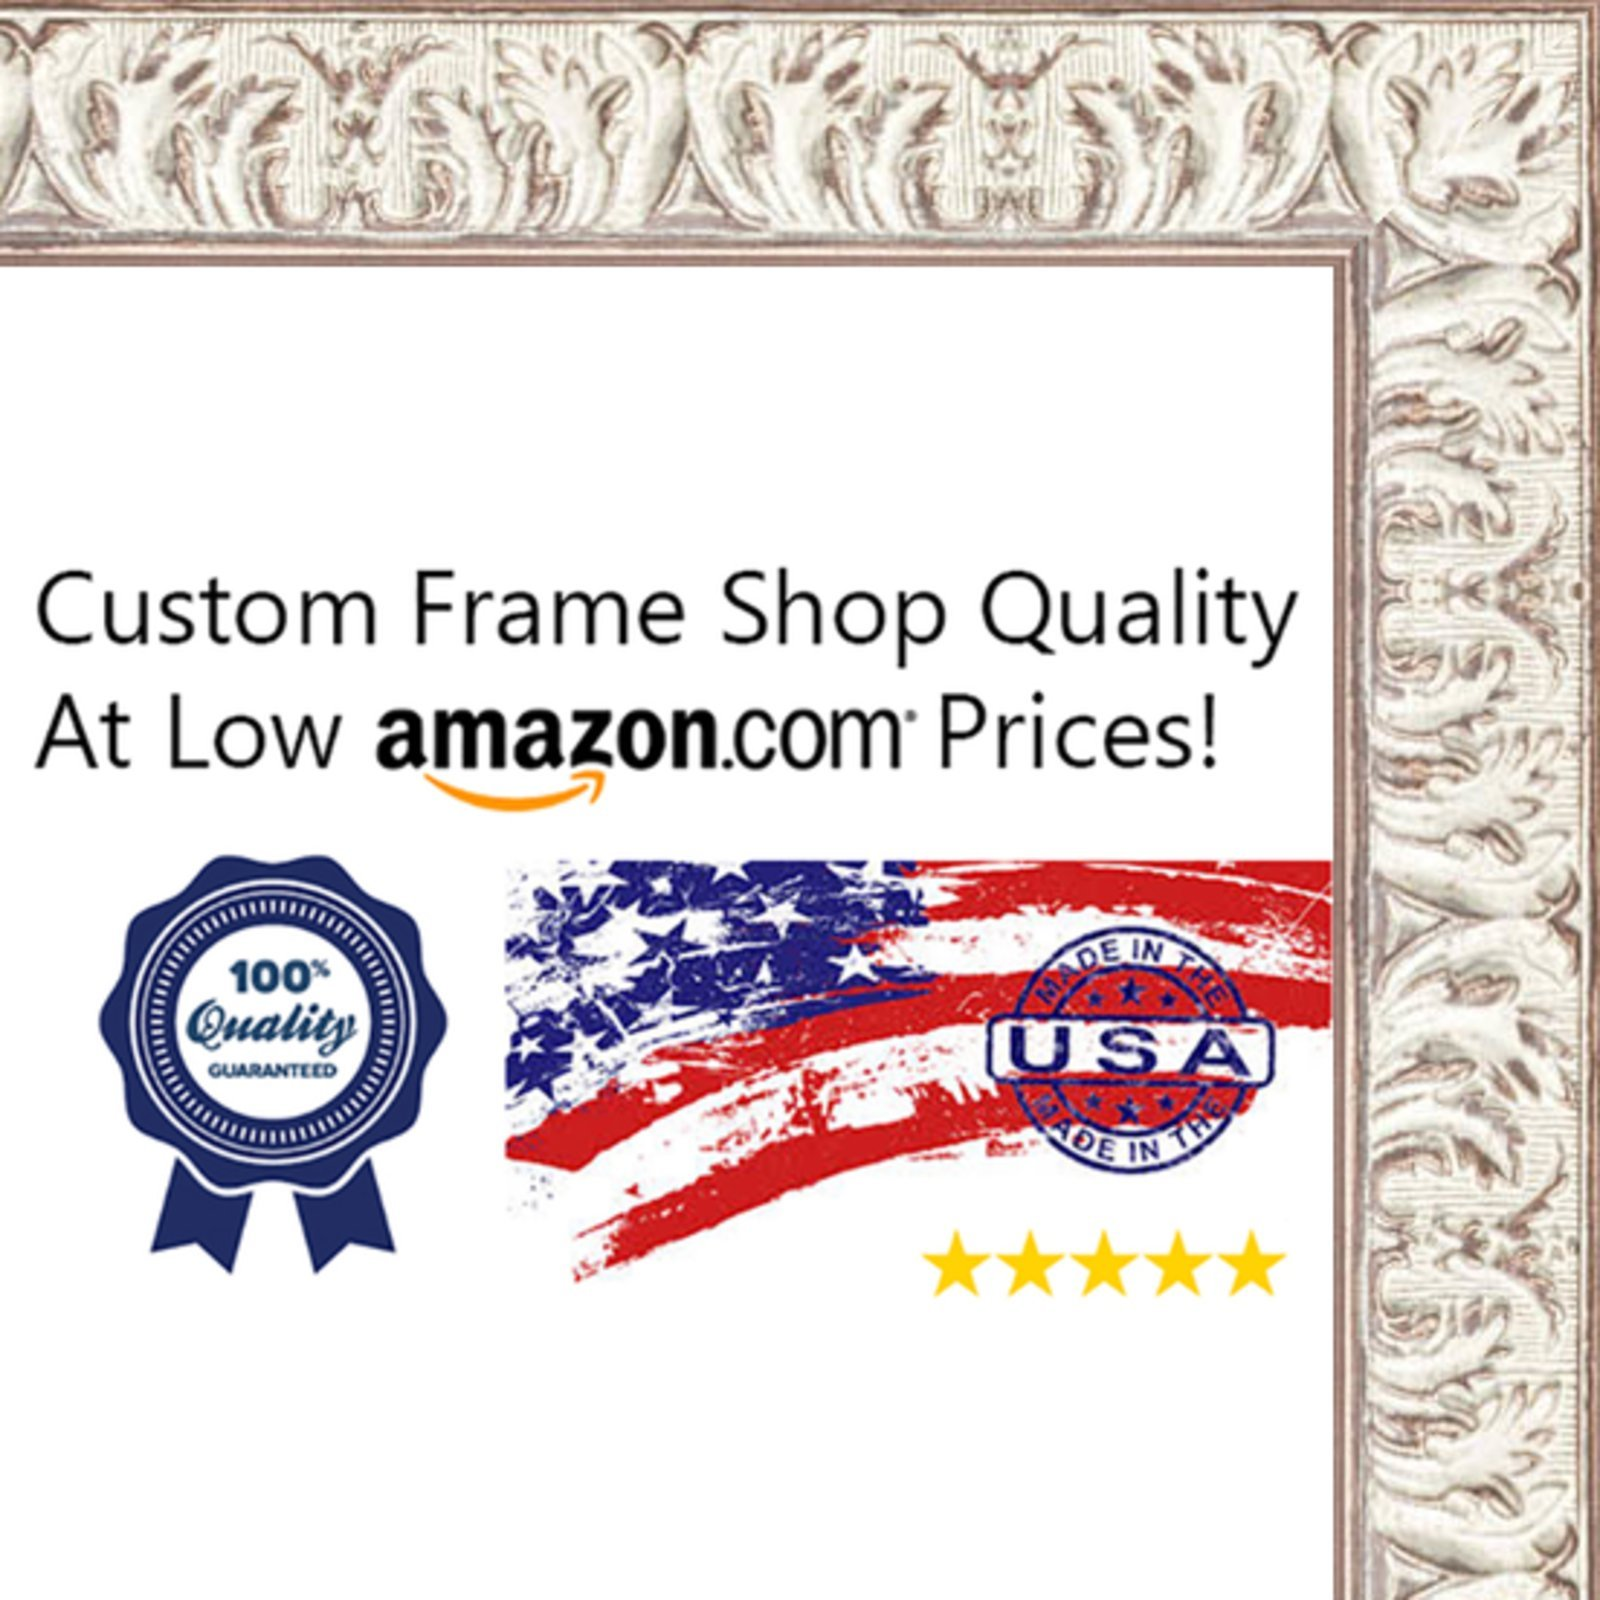 32x32 Ornate White Washed Wood Picture Square Frame - UV Acrylic, Foam Board Backing, & Hanging Hardware Included!